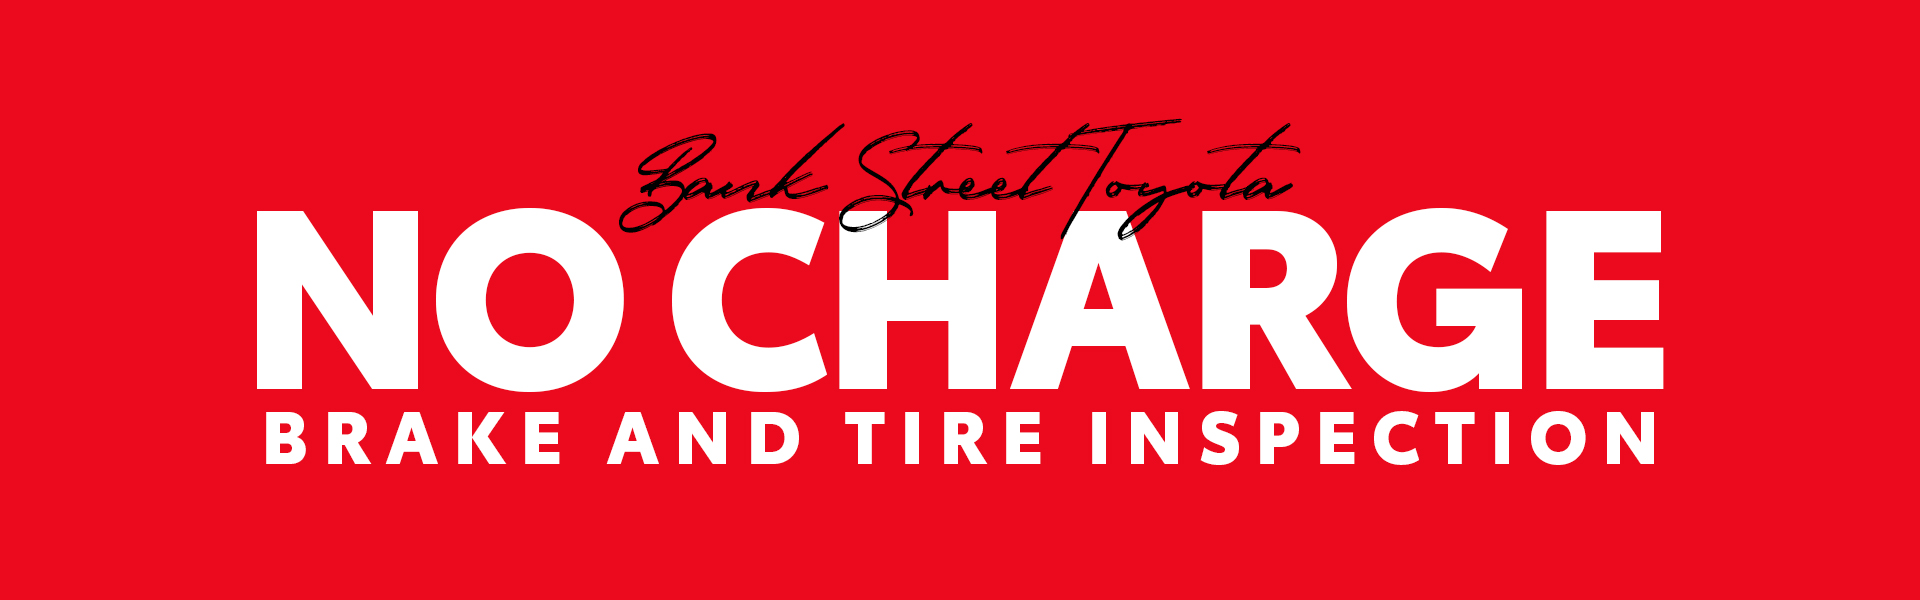 No Charge Brake and Tire Inspection